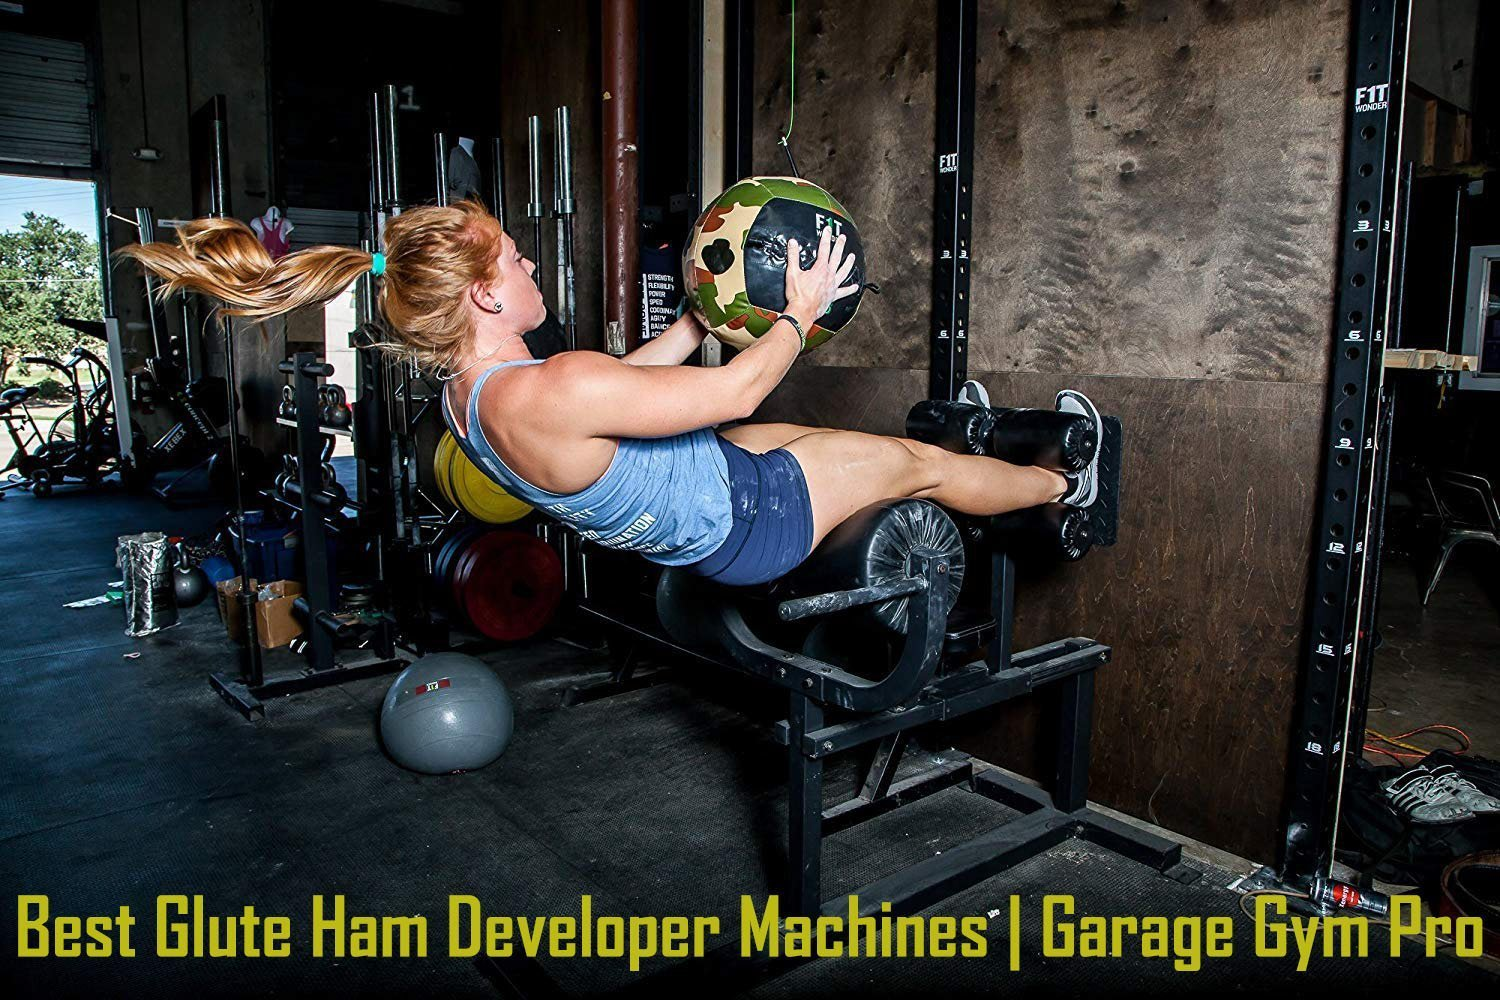 10 Best Glute Ham Developer Machines